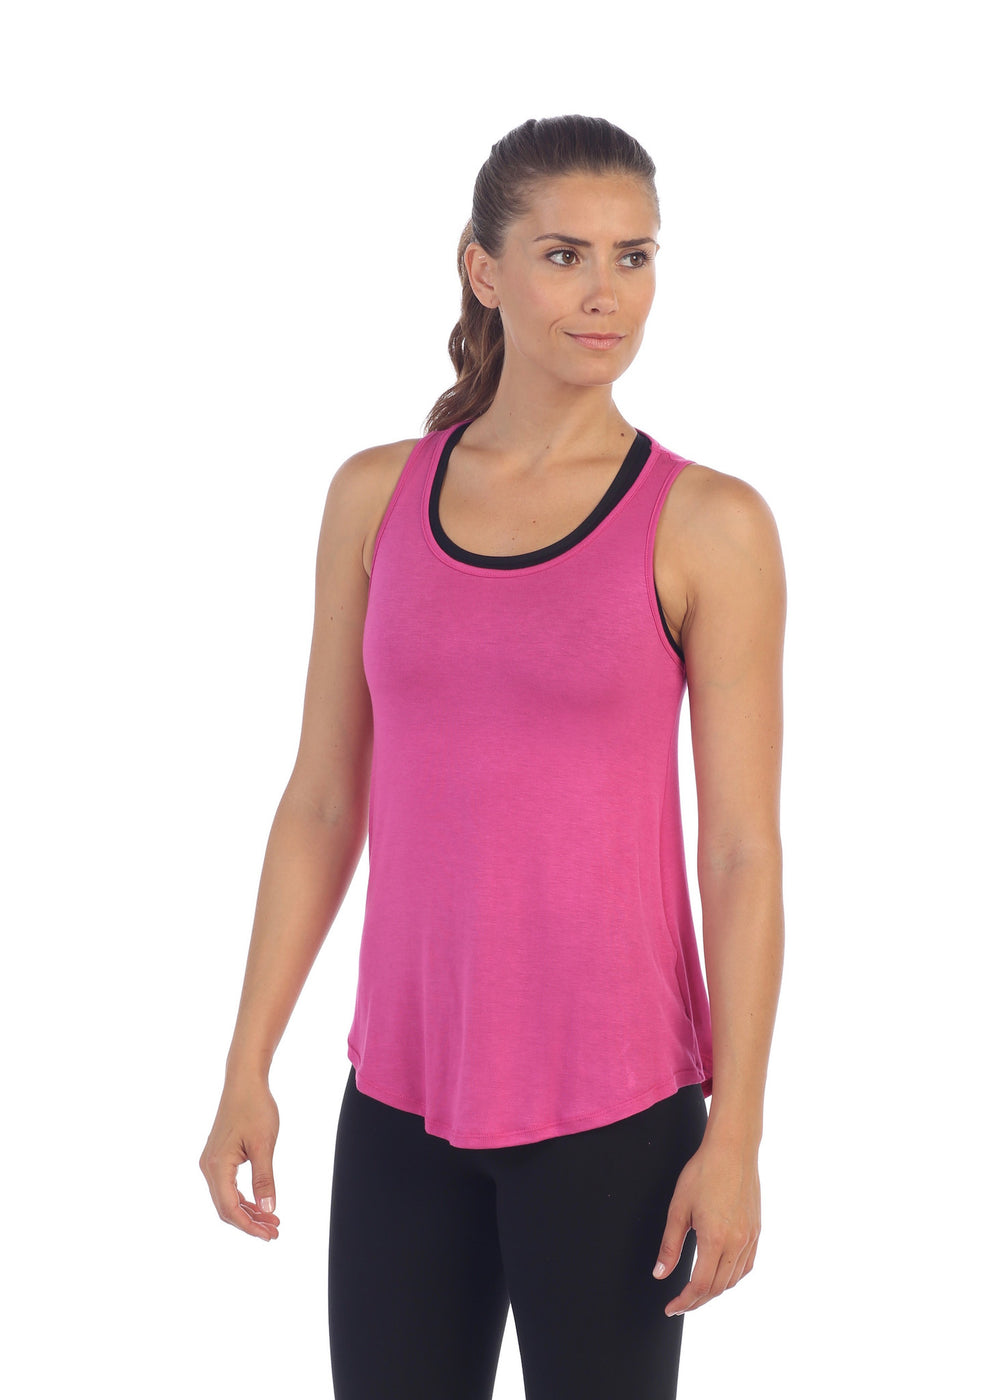 Fuchsia, Get Shredded Back Workout Tank Top, American Fitness Couture, front image